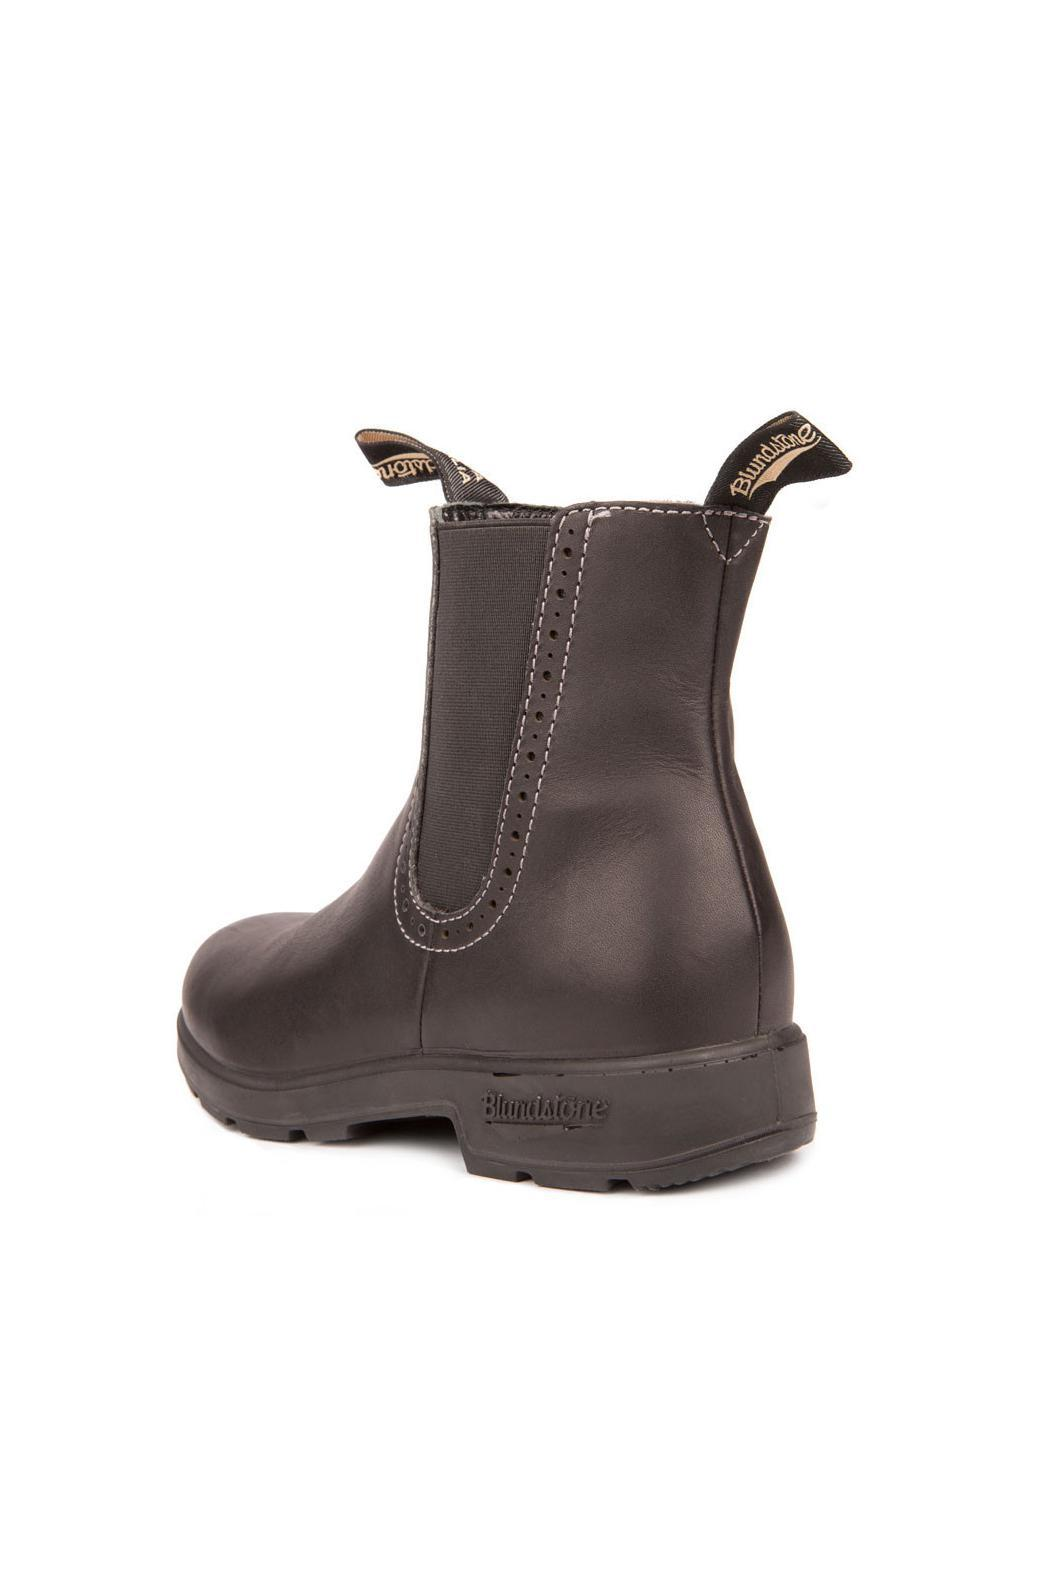 Blundstone  Girlfriend 1448  Black Boot - Front Full Image